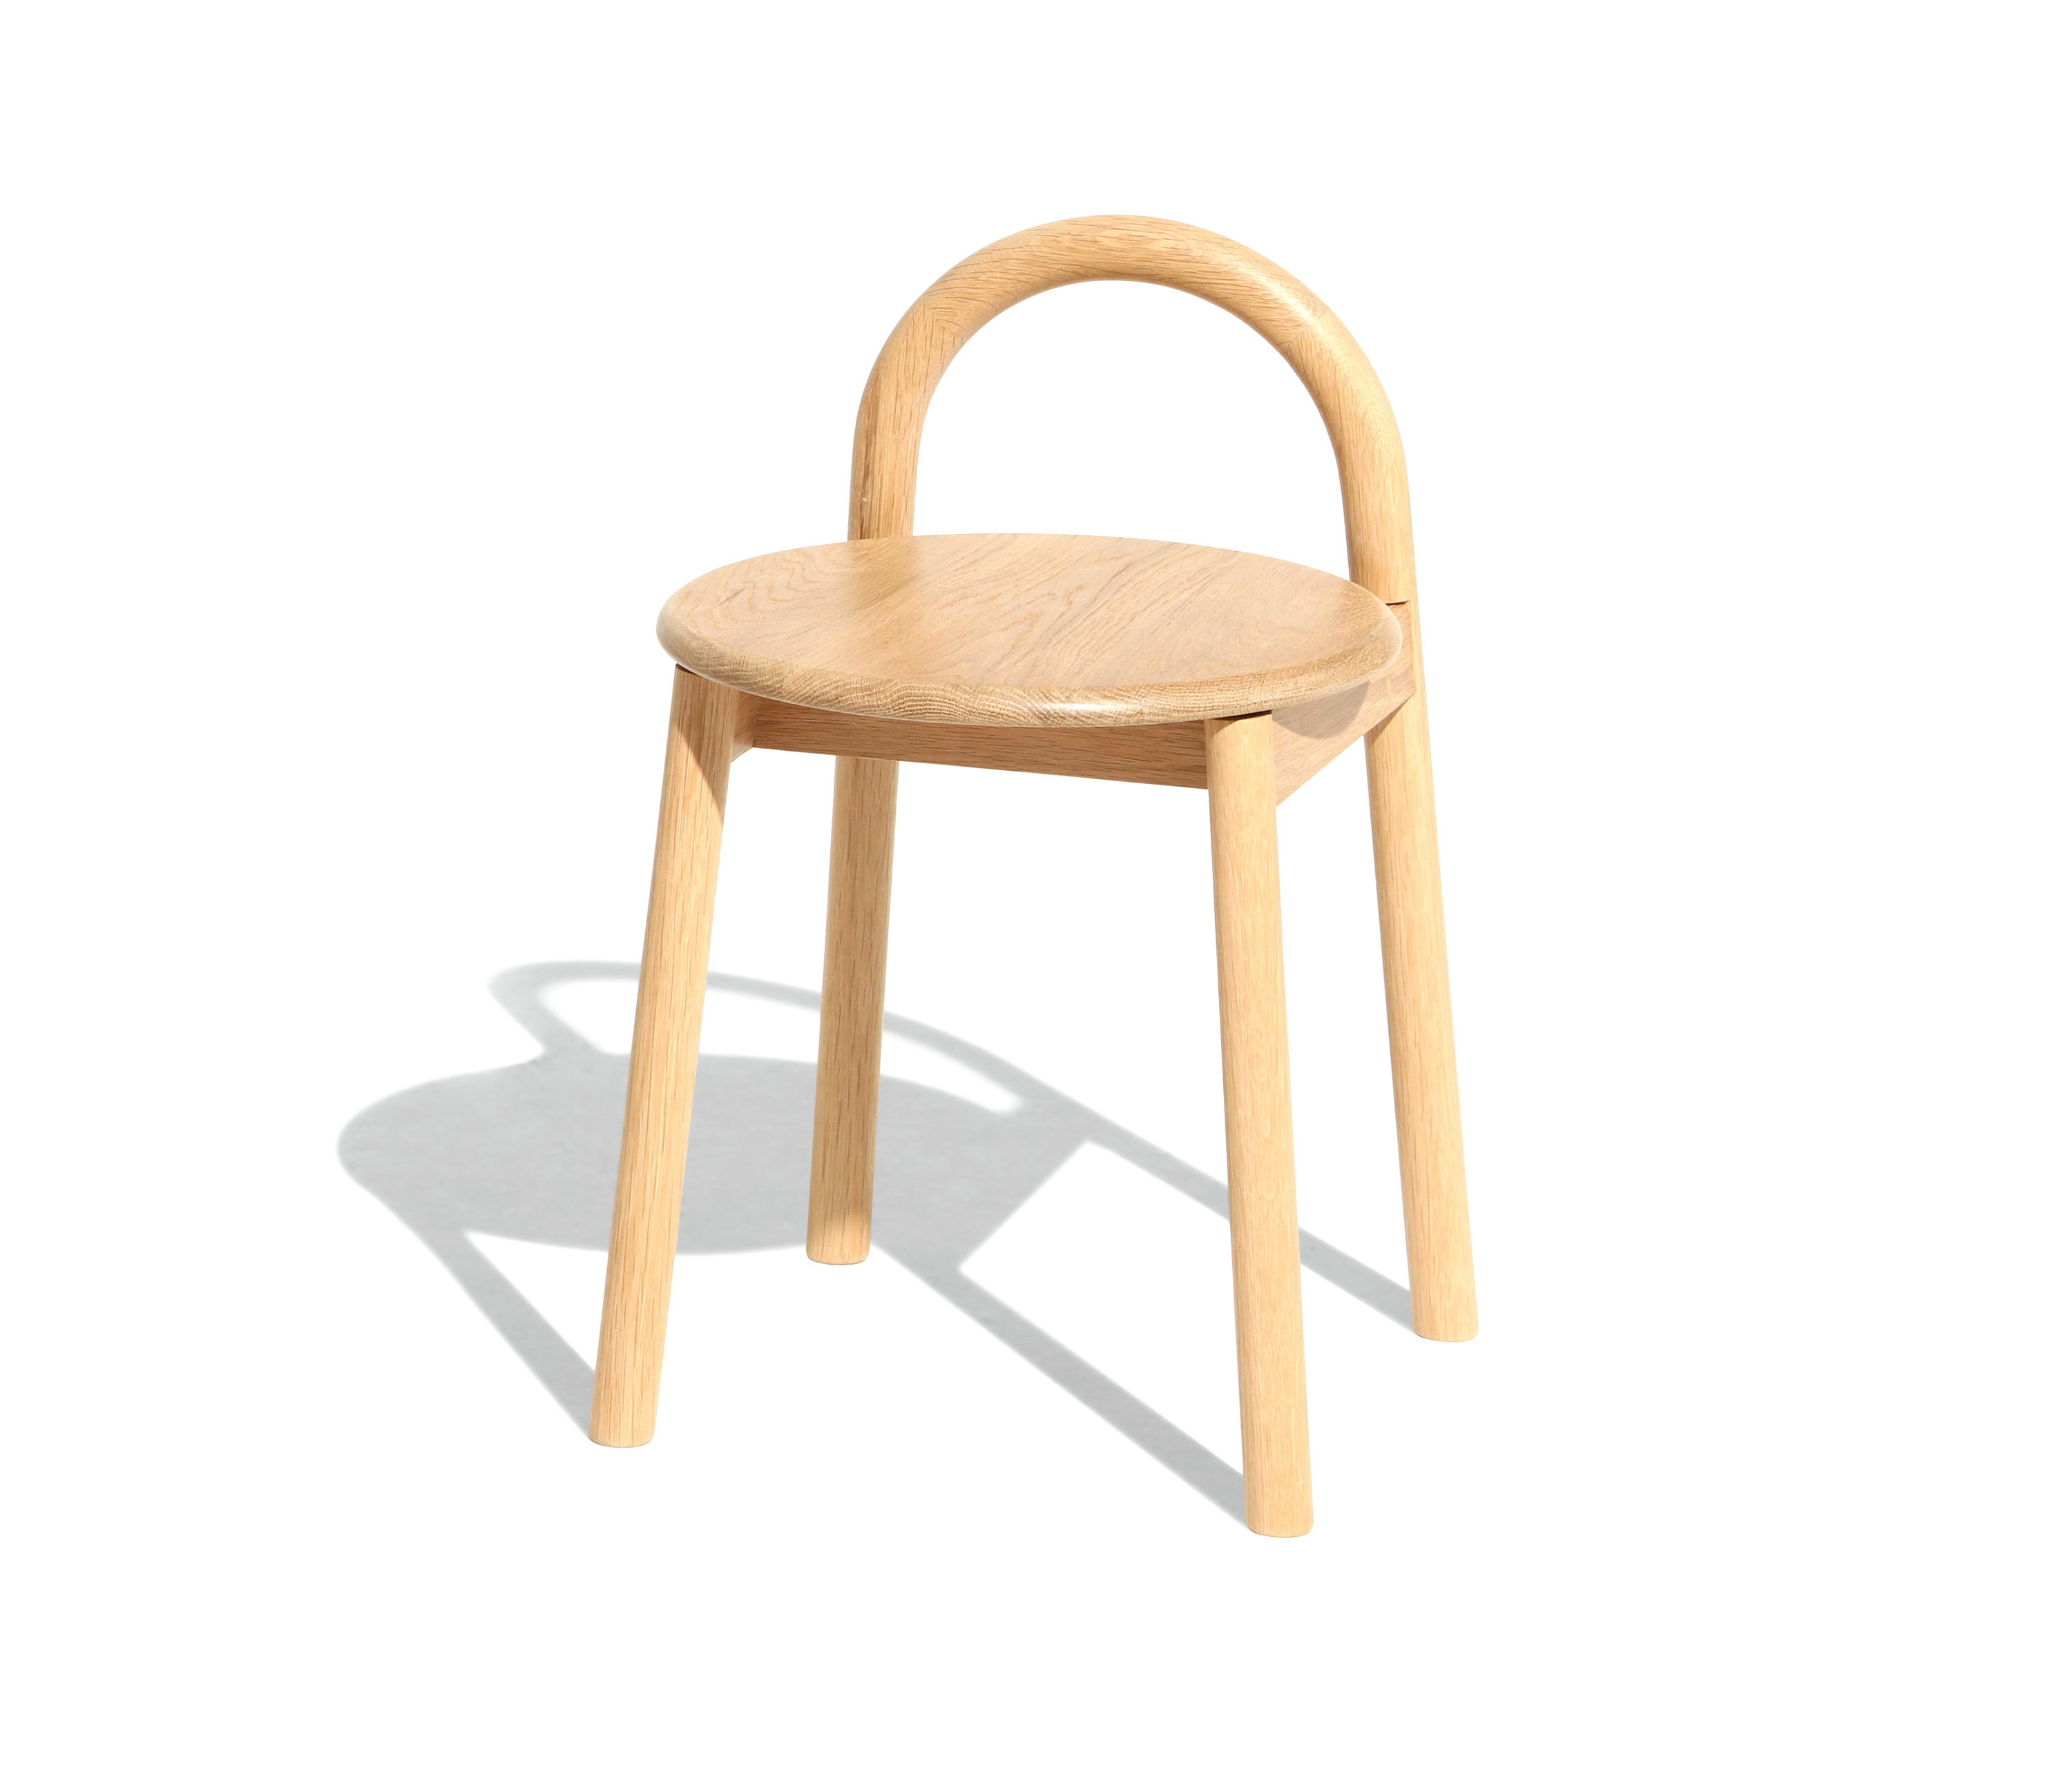 Groovy Bobby Stool Stools From Designbythem Architonic Gmtry Best Dining Table And Chair Ideas Images Gmtryco